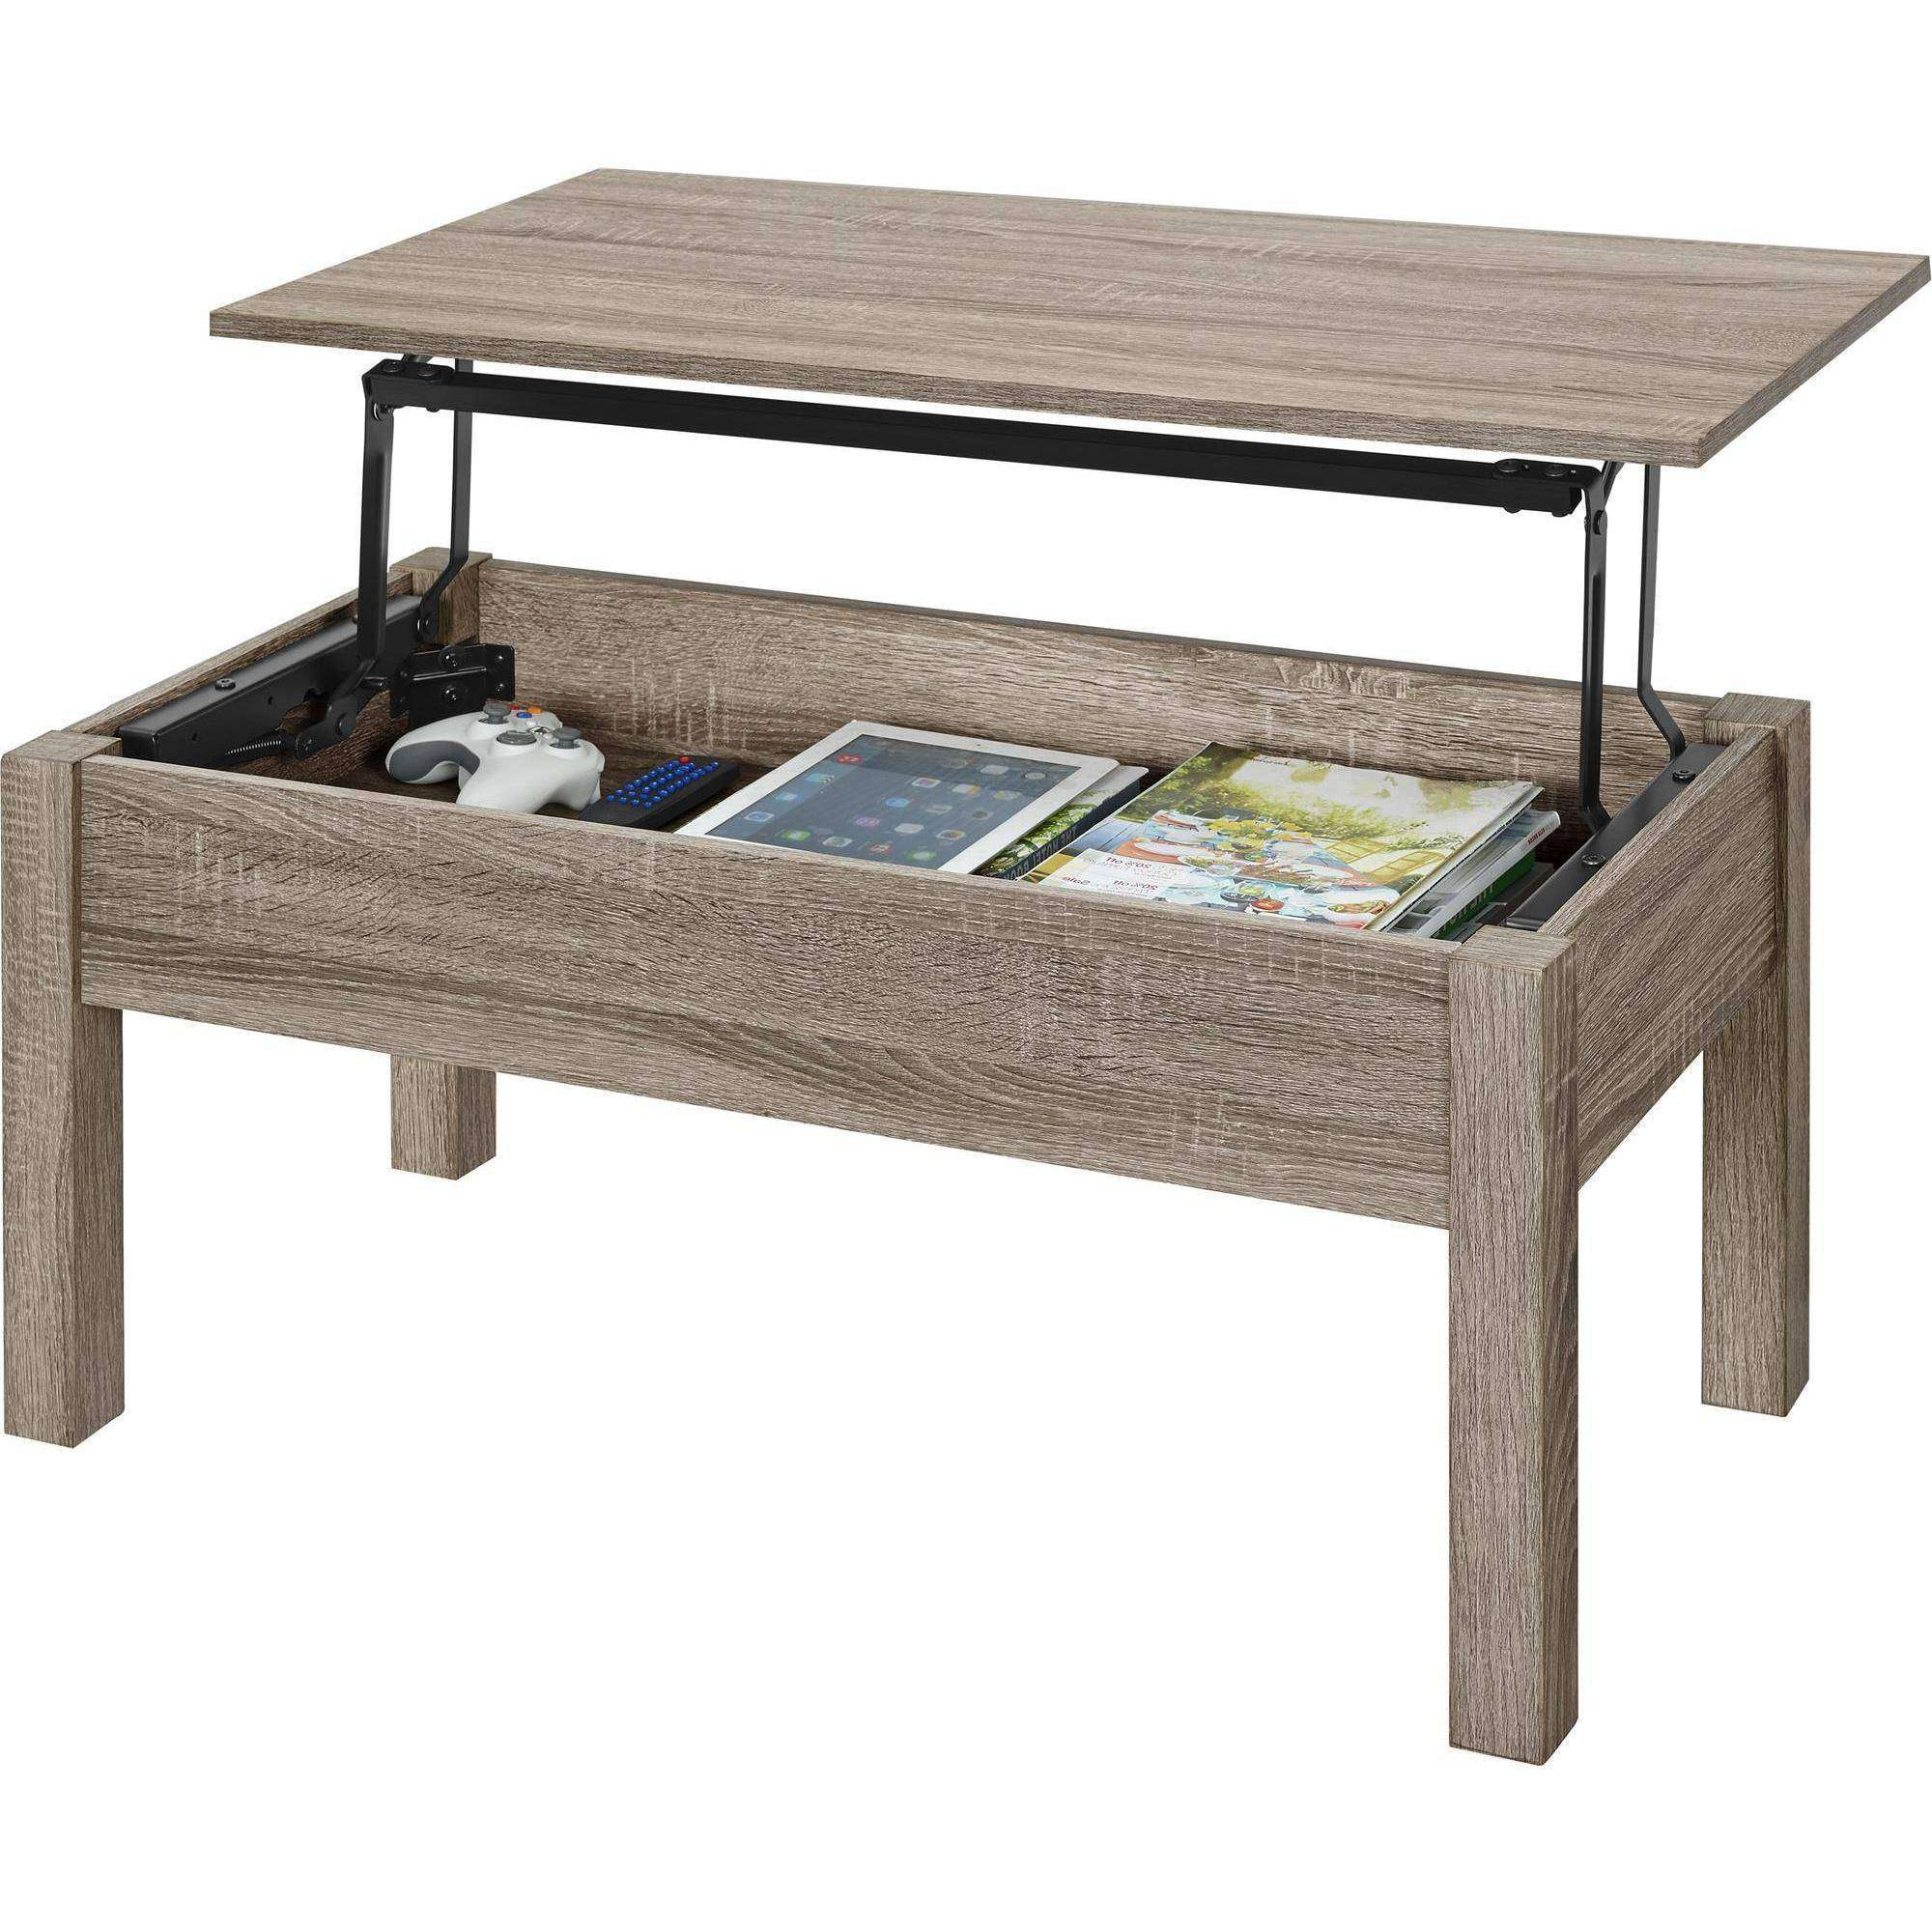 Mainstays Lift Top Coffee Table, Multiple Colors – Walmart Pertaining To Well Known Lift Up Coffee Tables (View 7 of 20)